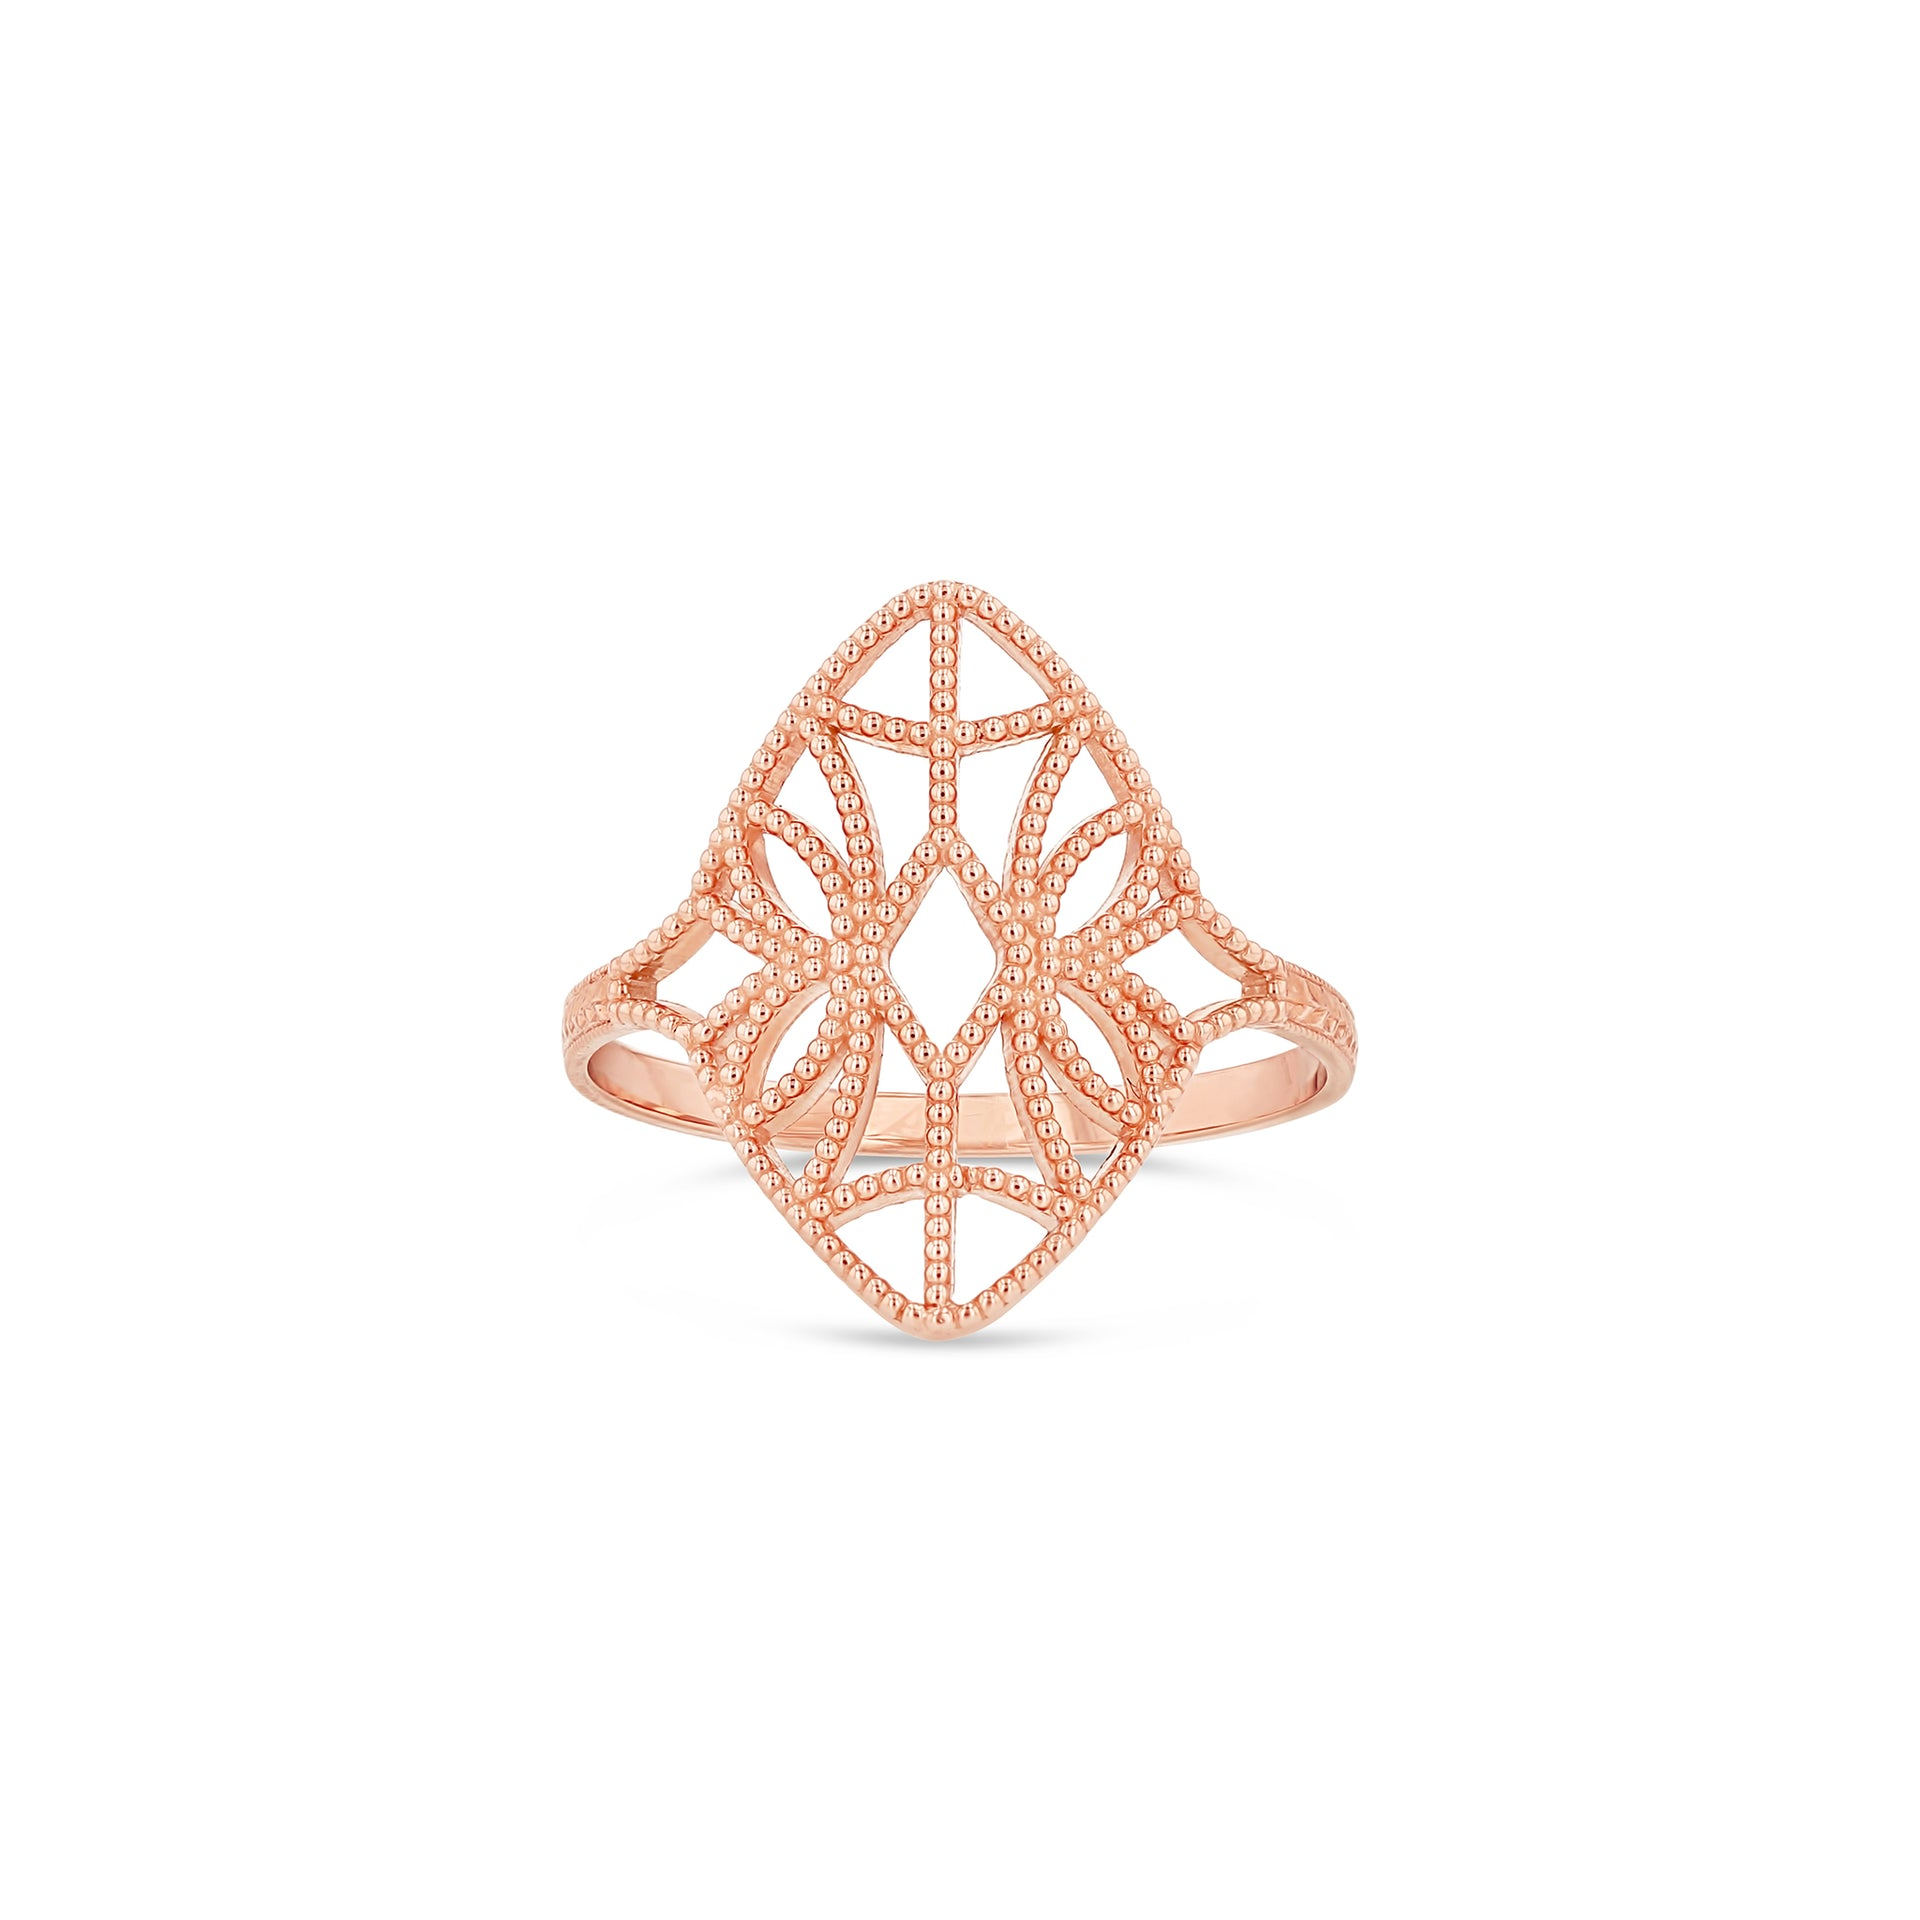 Lace Deco Ring - X